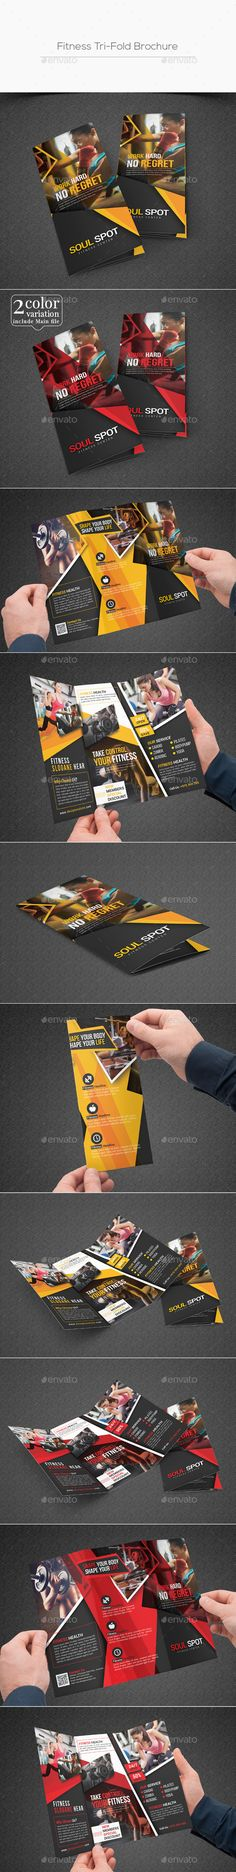 Fitness Tri-Fold Brochure Design Template - Corporate Brochures Design Template PSD. Download here: https://graphicriver.net/item/fitness-trifold-brochure/19400833?ref=yinkira